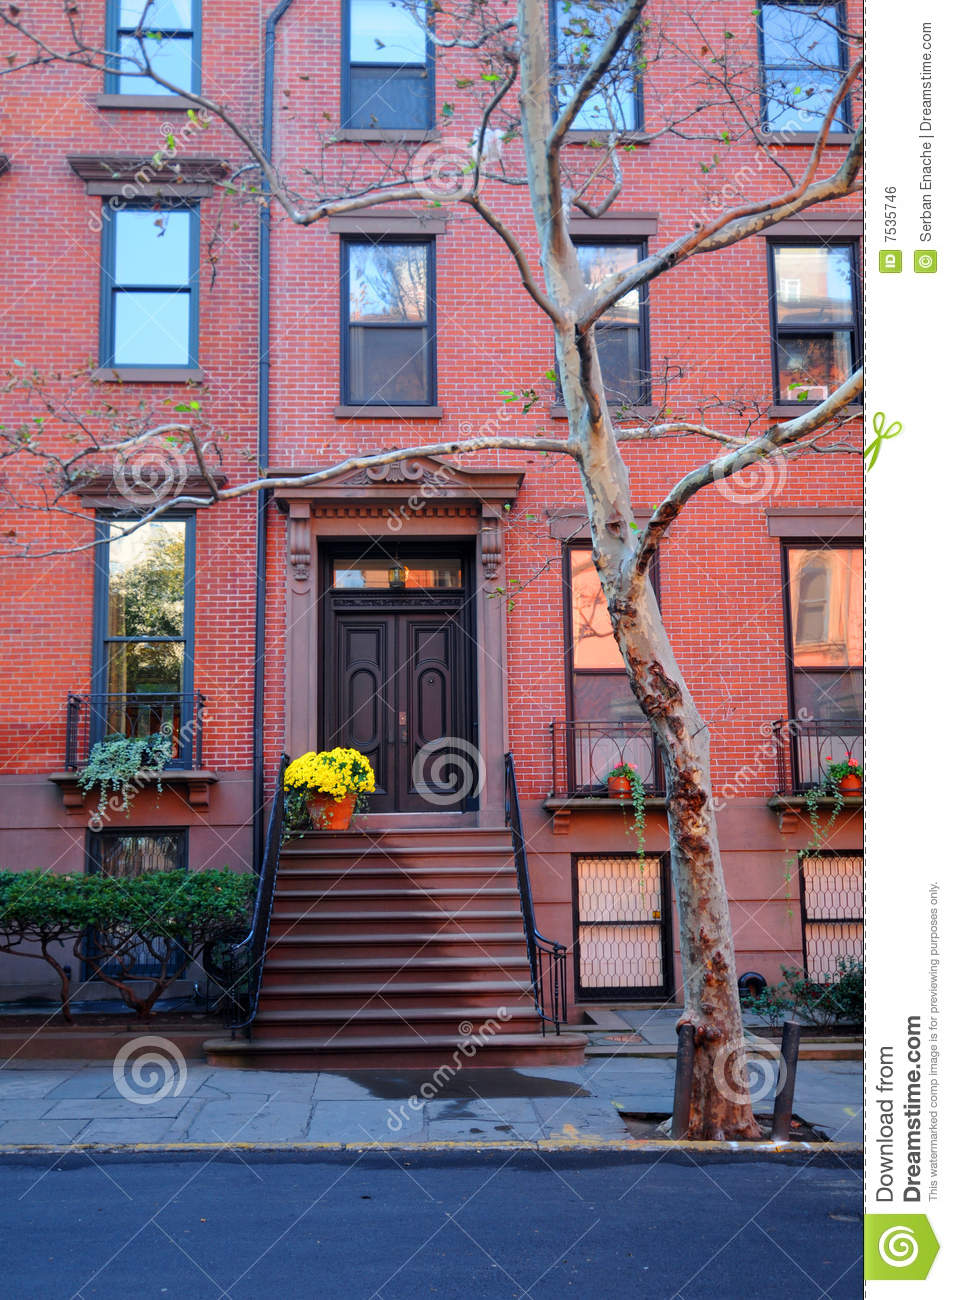 House in brooklyn royalty free stock image image 7535746 for Buying a home in brooklyn